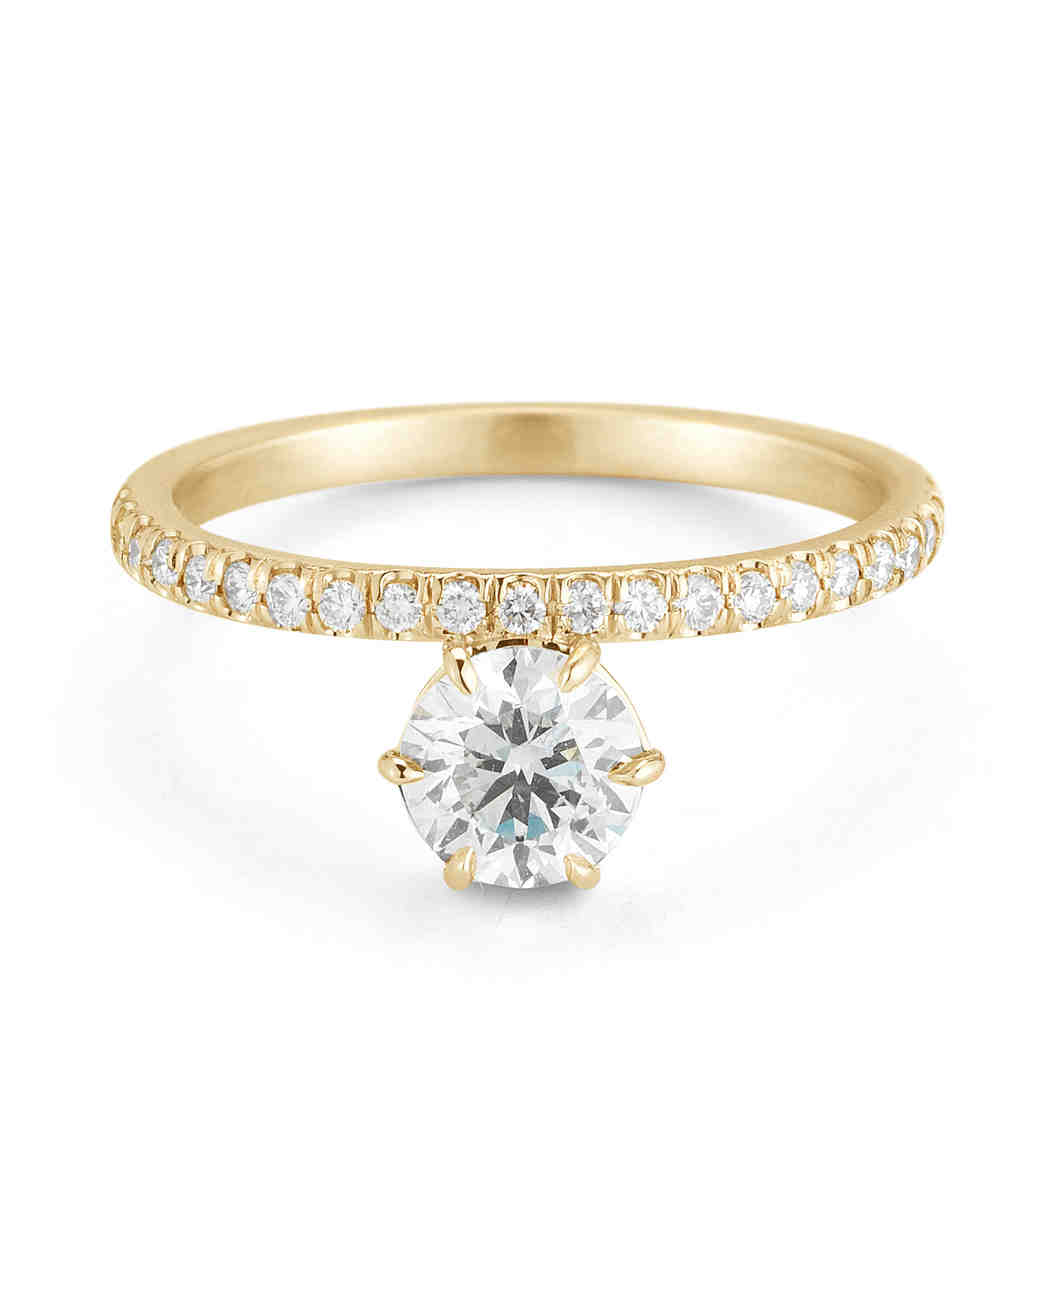 yellow gold engagement rings | martha stewart weddings zfcfgqt